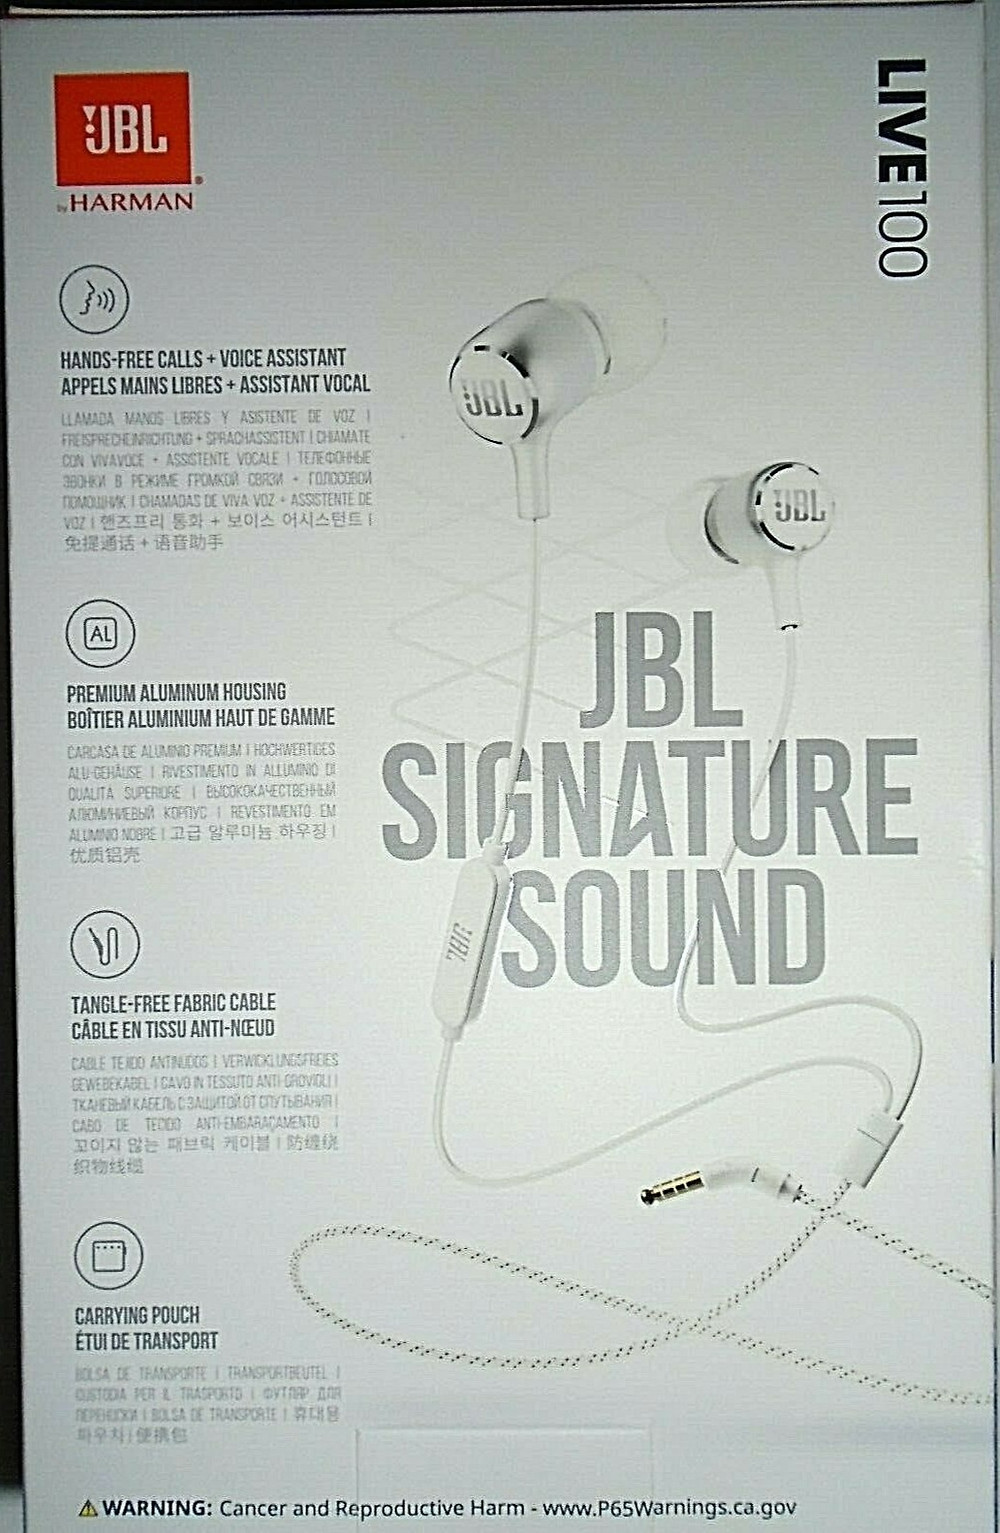 JBL Live 100 in-Ear Headphones with Remote - JBL Signature Sound